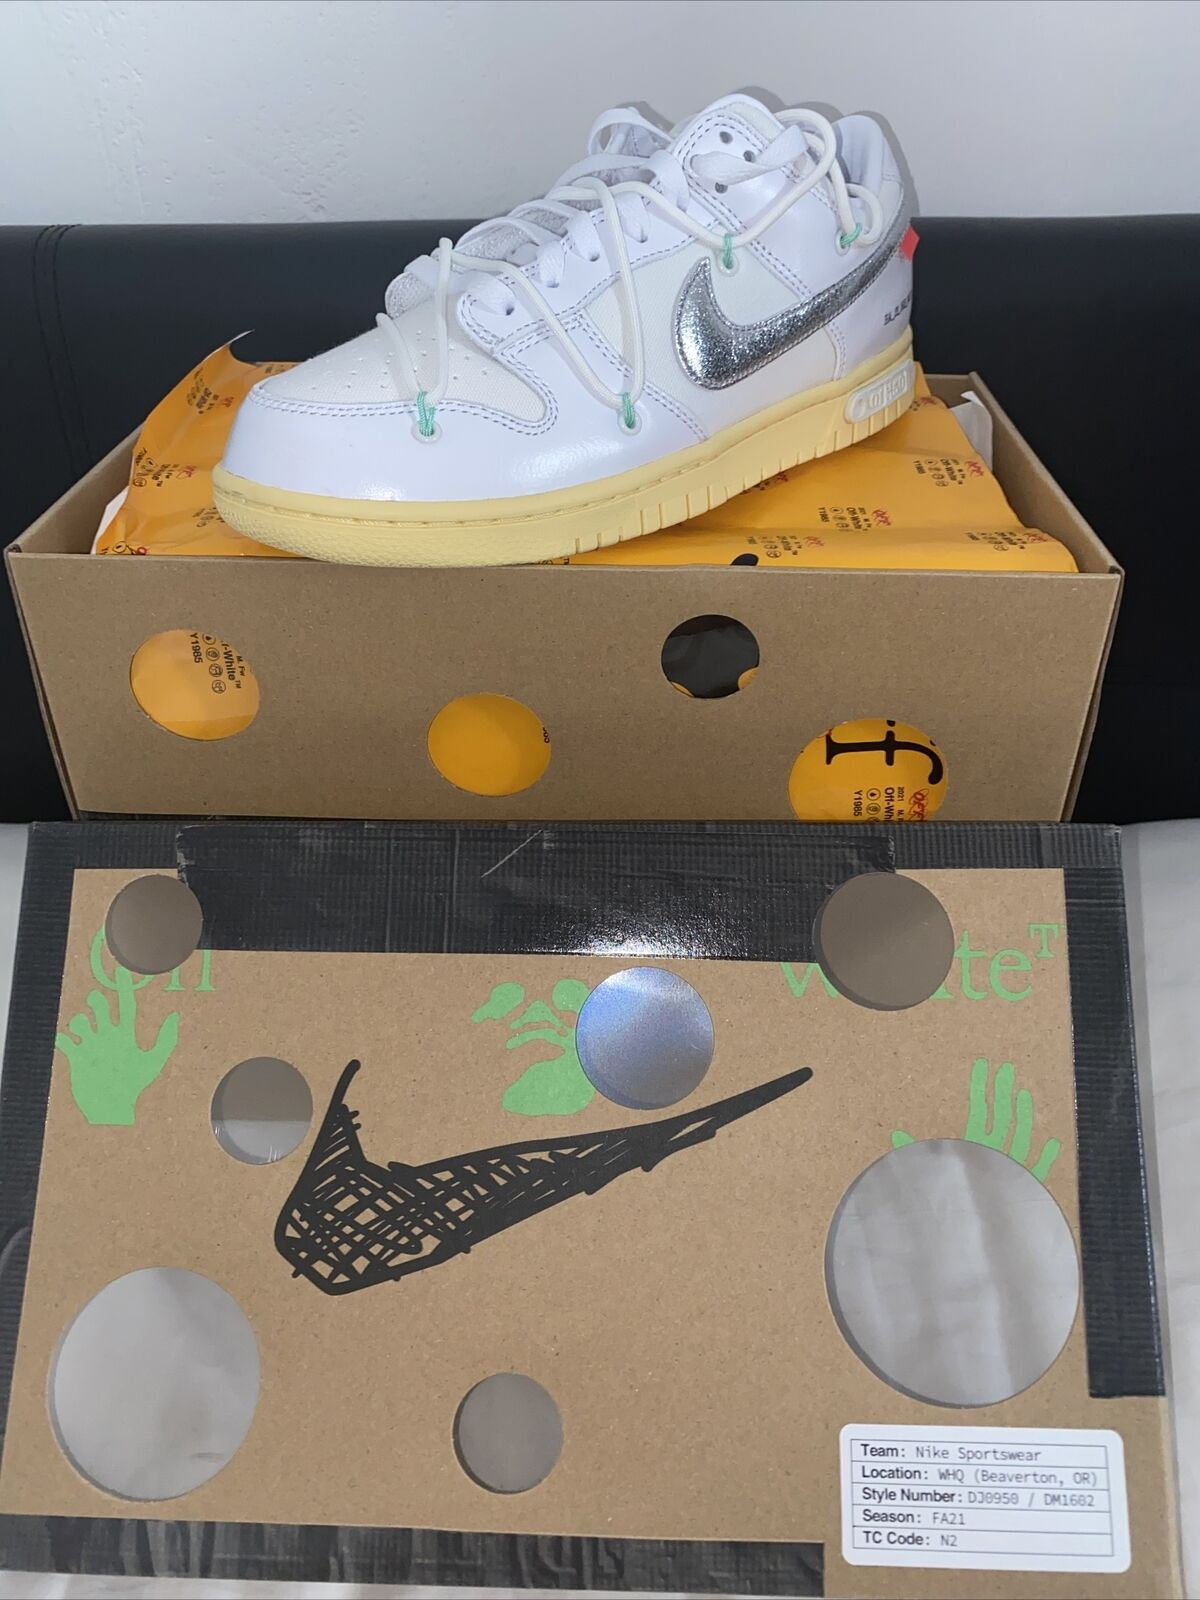 Nike X Off White Dunk Low - Lot 1 Of 50 White/Silver/Butter - UK 7.5 / US 8.5